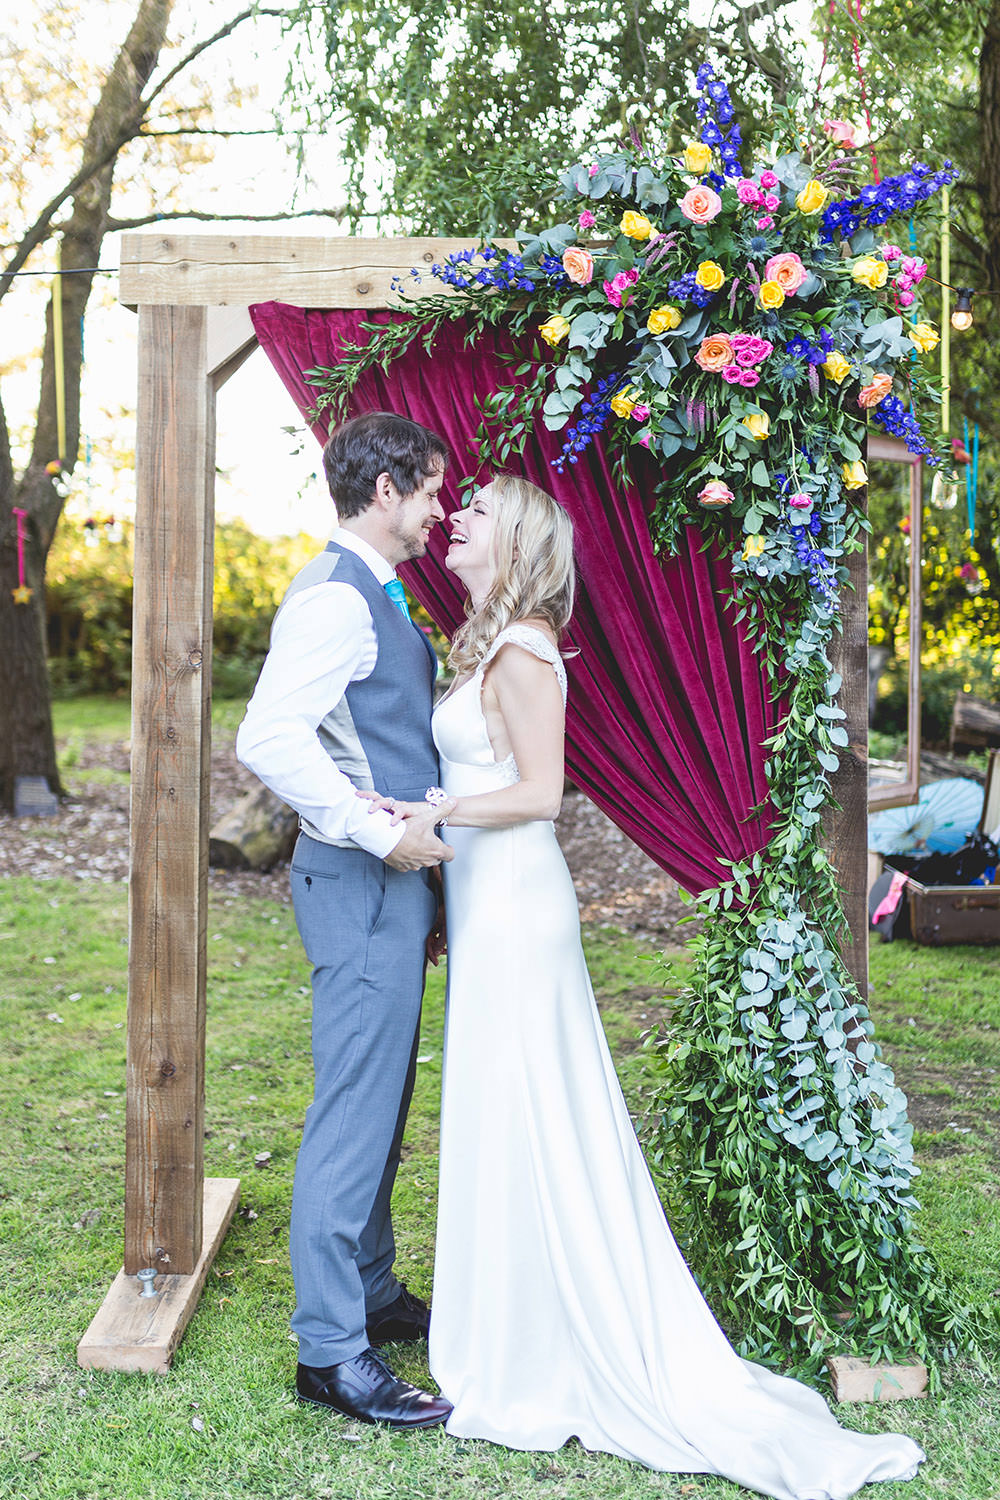 Hothorpe Hall Woodlands Wedding Lucy Long Photography Flower Arch Florals Wooden Frame Multi Colour Colourful Backdrop